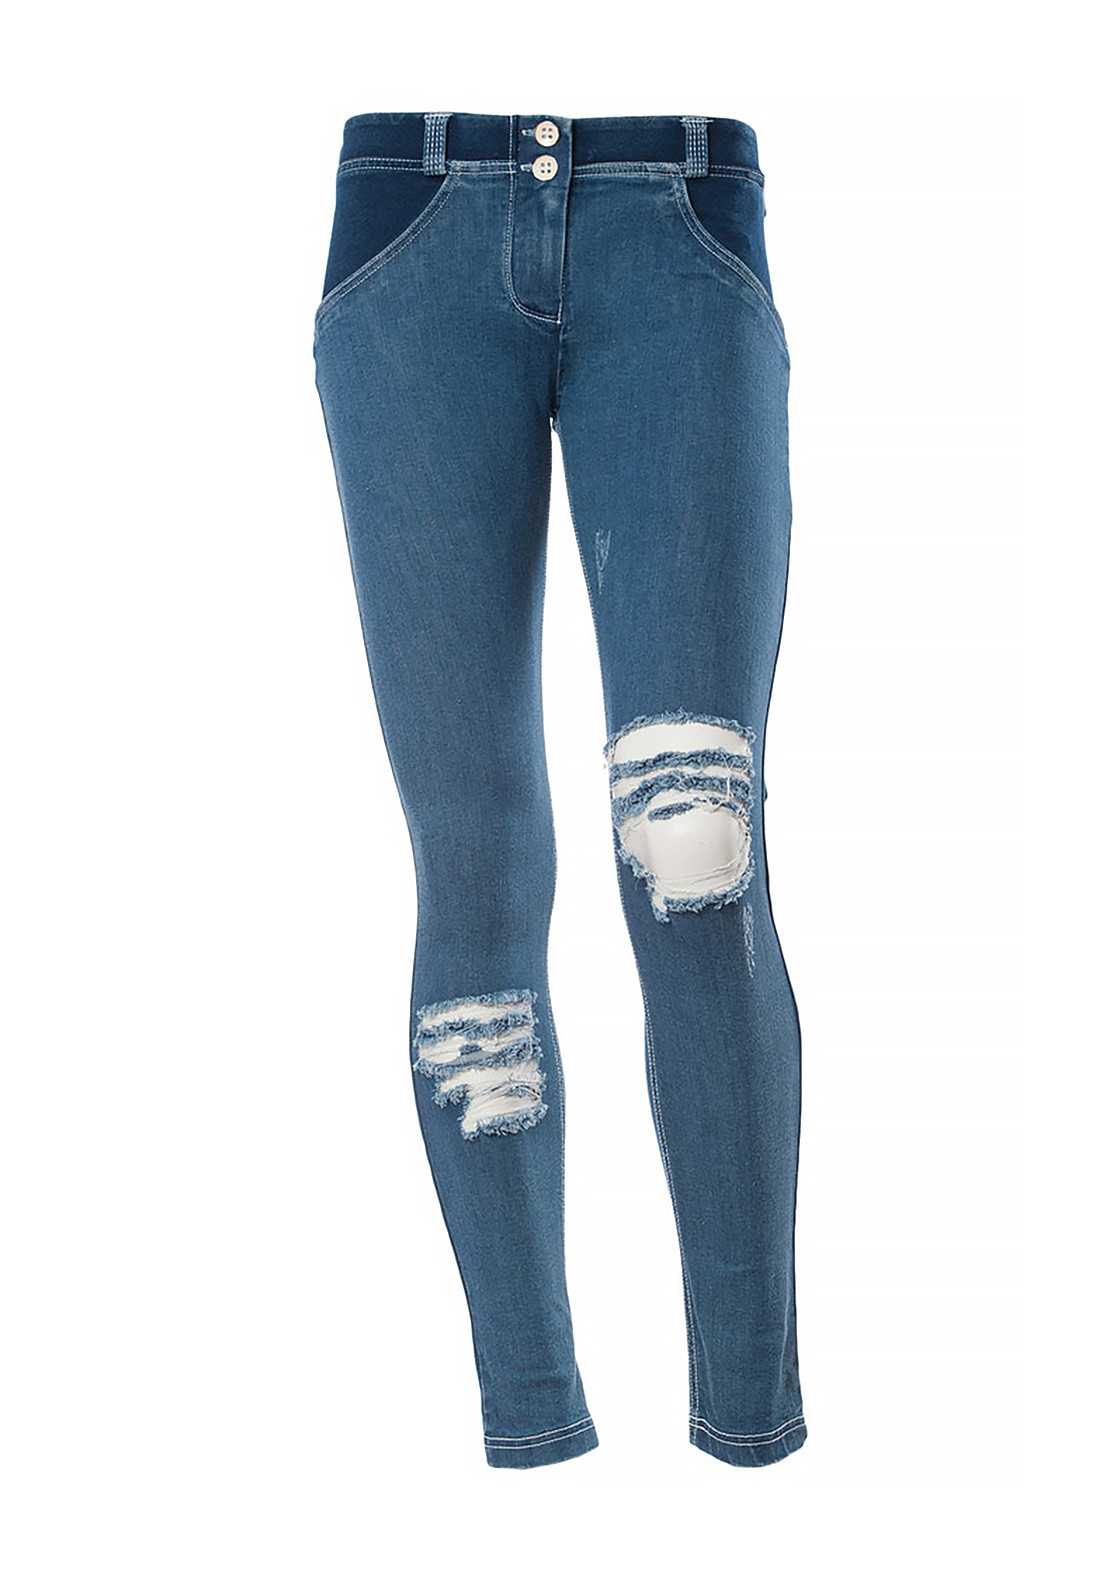 freddy wr up ripped low waist skinny 7 8 jeans blue mcelhinneys. Black Bedroom Furniture Sets. Home Design Ideas